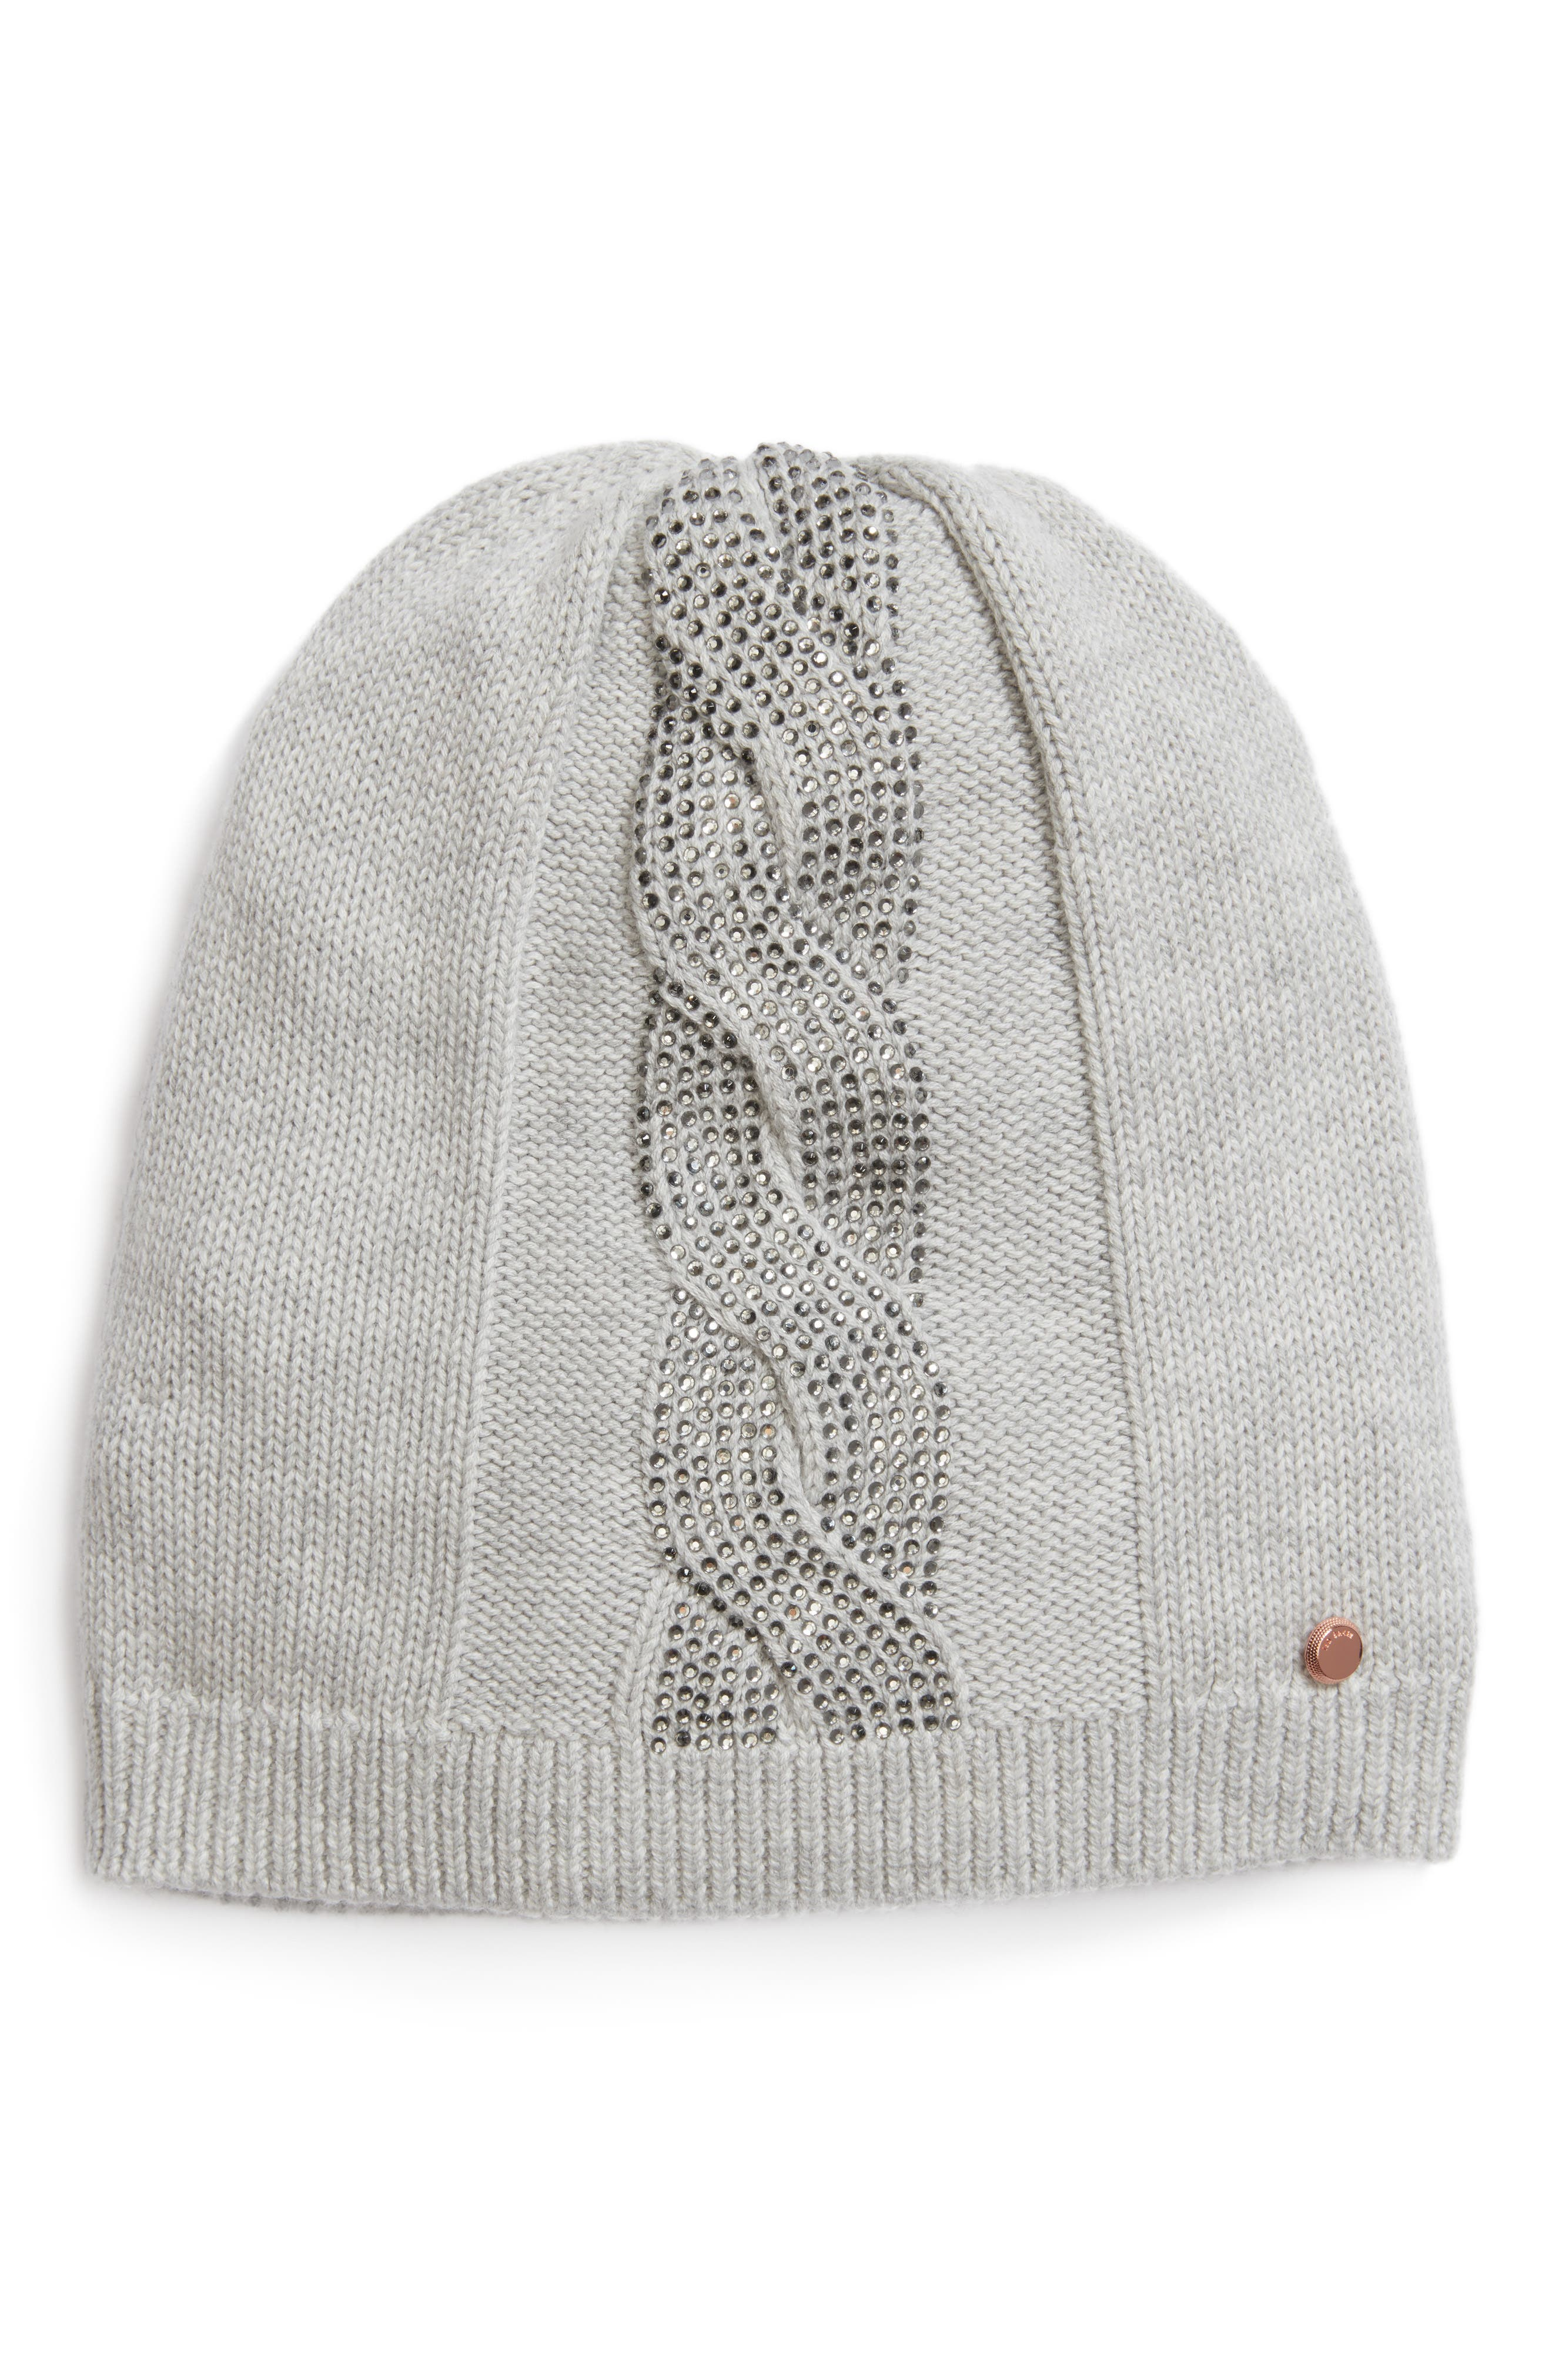 Ted Baker London Embellished Slouchy Beanie